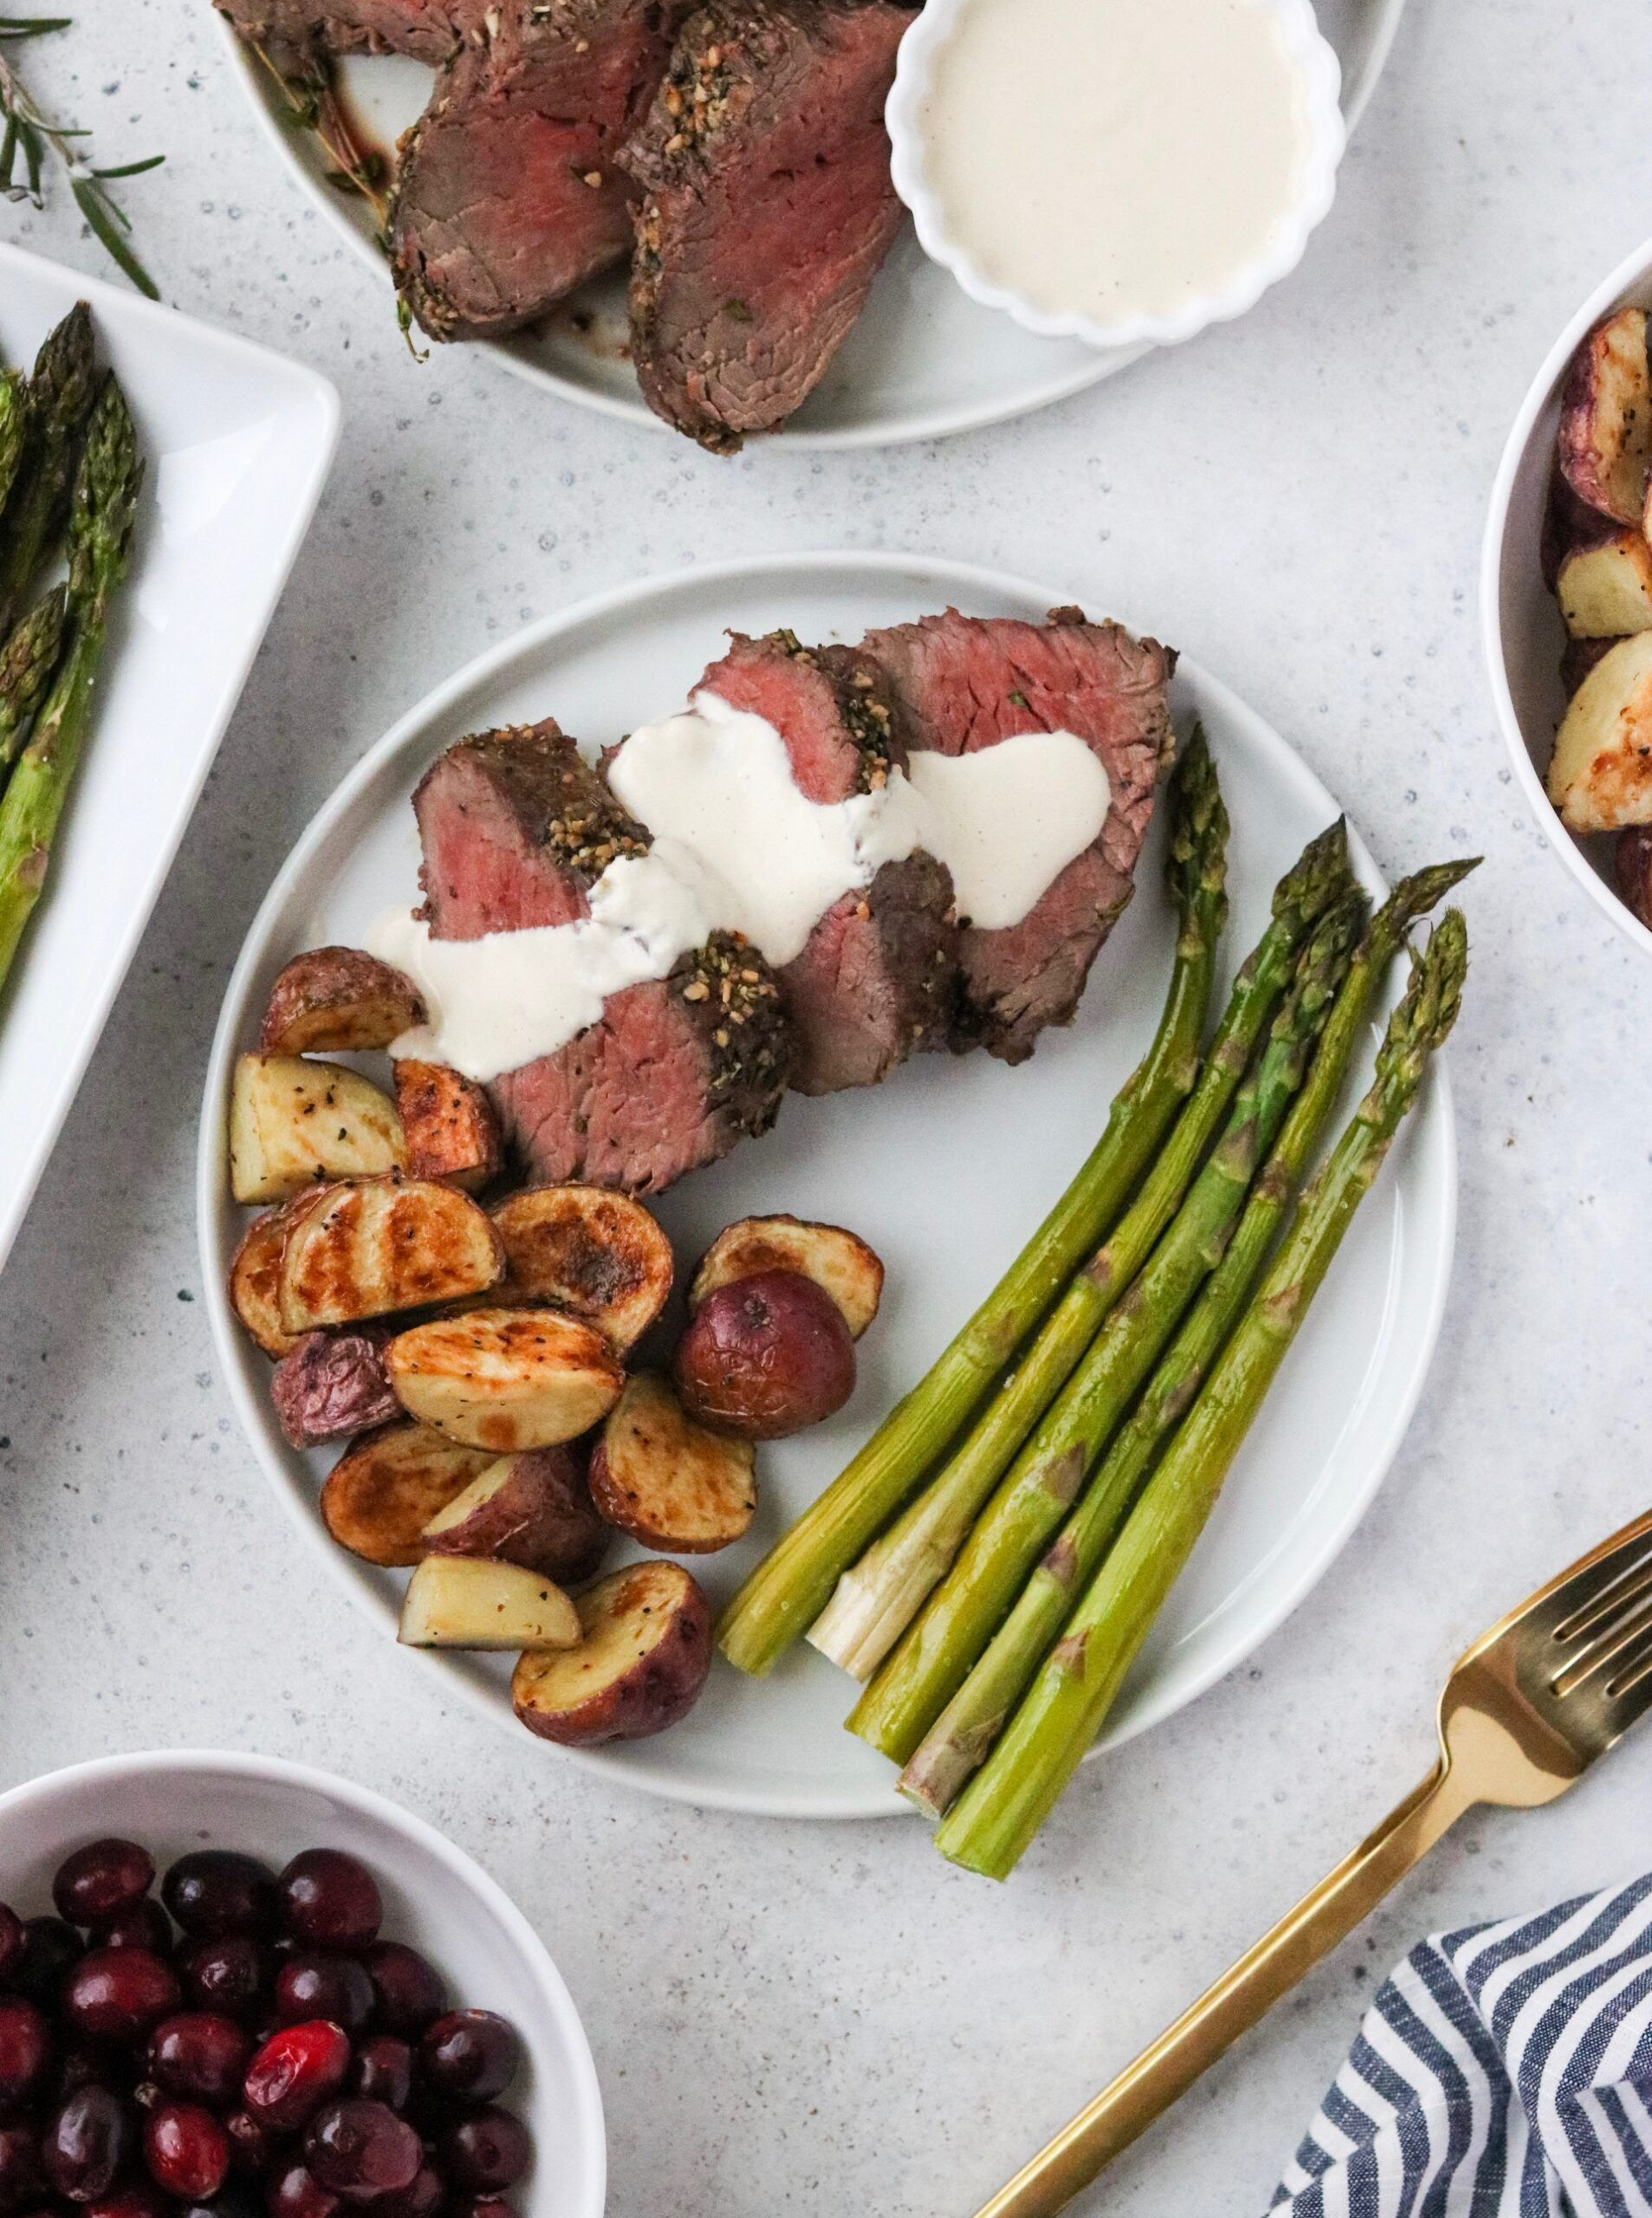 This Beef Tenderloin with Dairy Free Horseradish Sauce is the perfect meal to serve at all of your holiday gatherings! This is a fool-proof method for cooking tenderloin so it turns out perfectly every time. This meal is Whole30 and Paleo friendly. #whole30recipes #beeftenderloin #tenderloin #holidays #holidaymeals #christmasdinner #christmasmeals #paleo #whole30 #beef #horseradish sauce